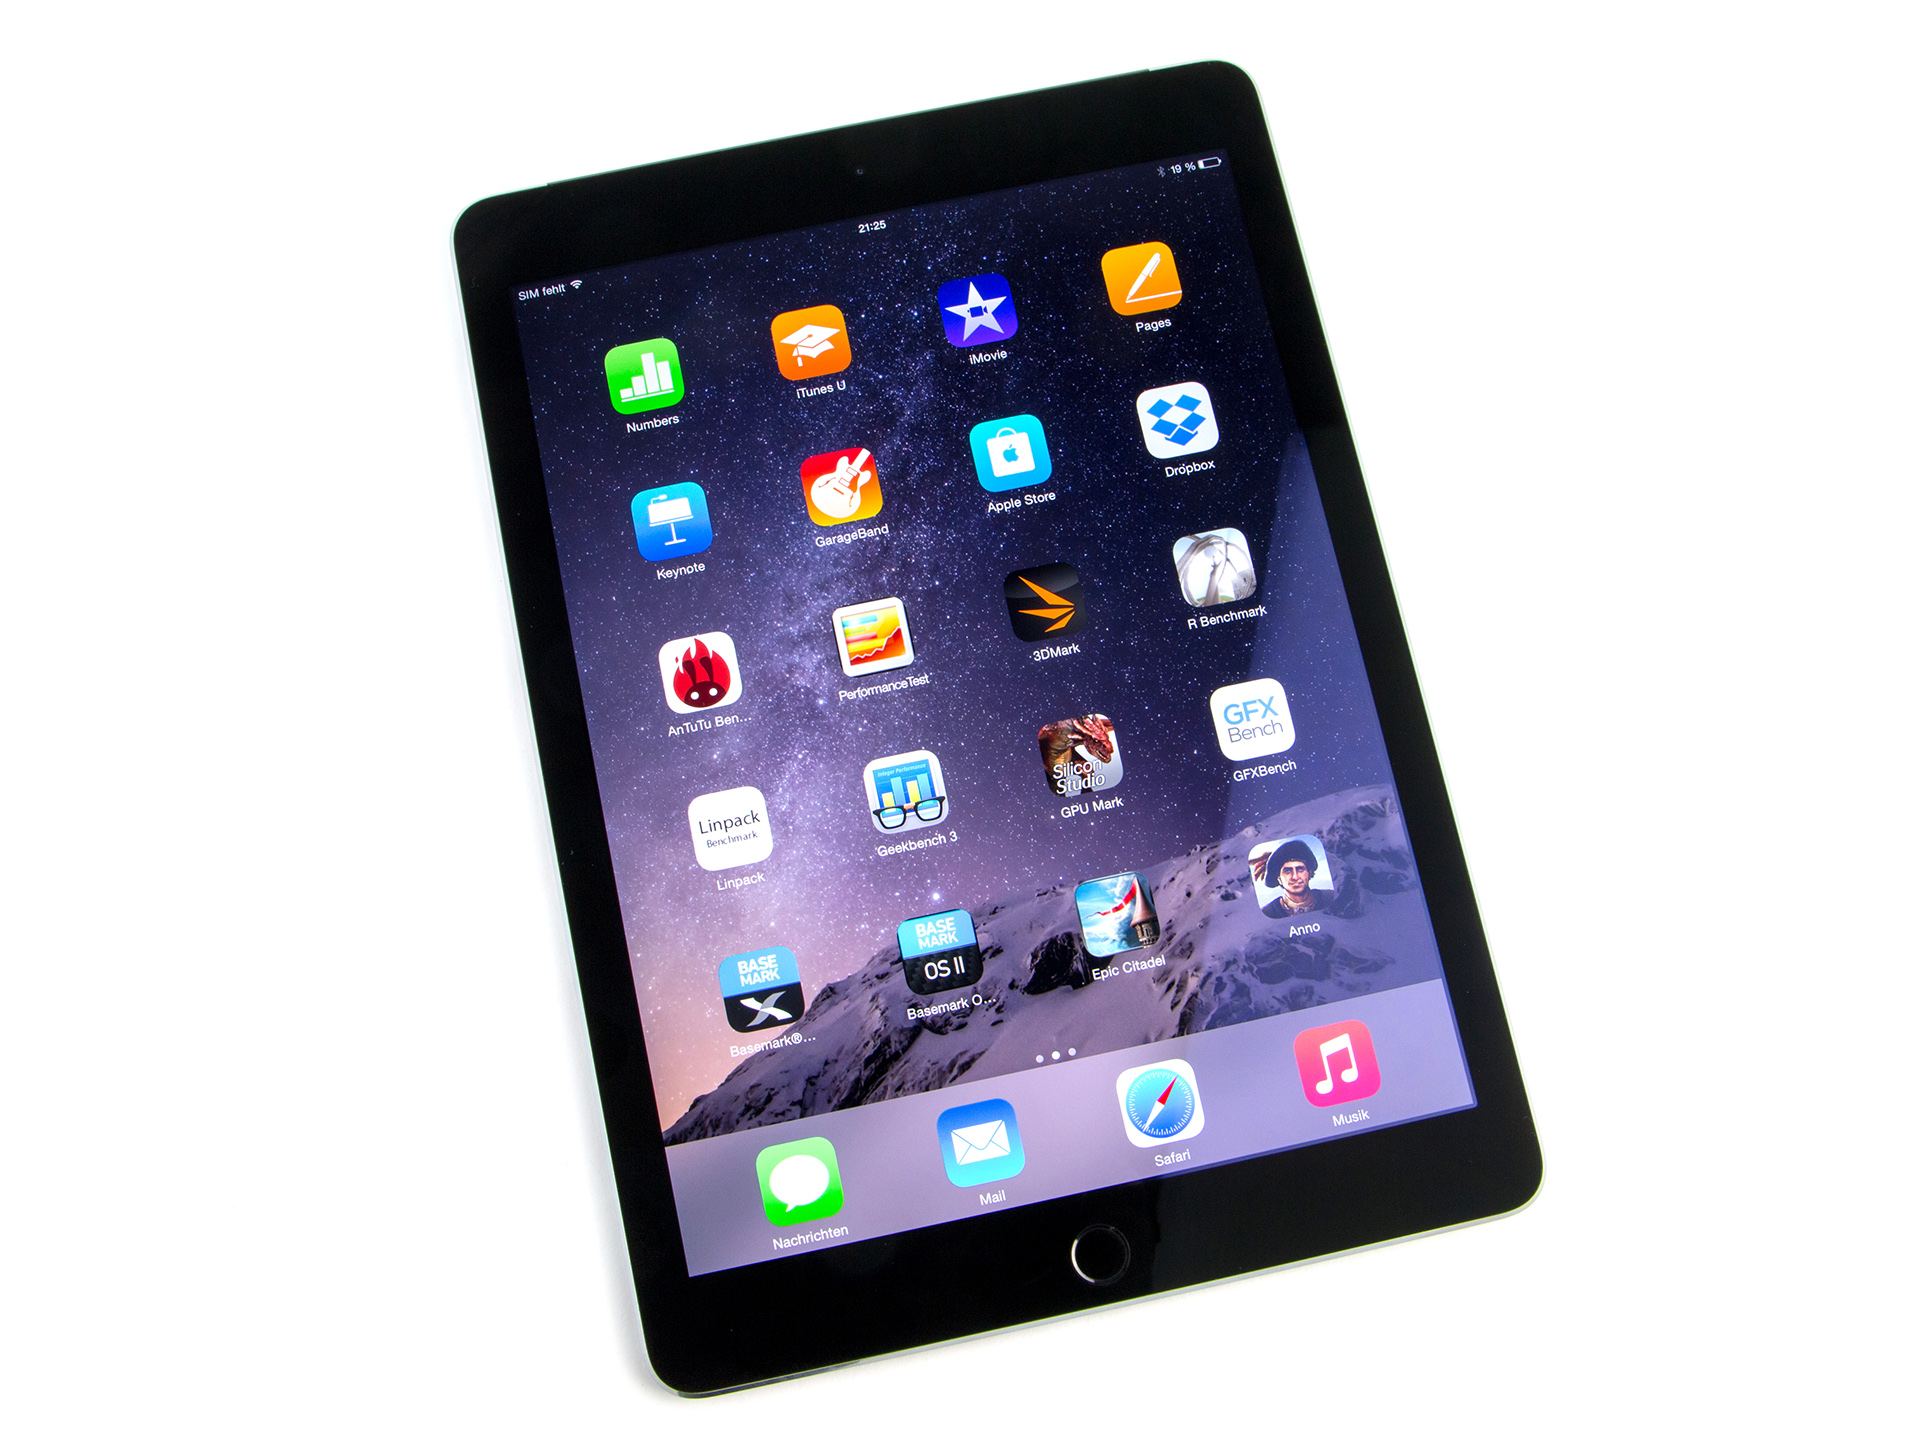 Test Apple IPad Air 2 A1567 128 GB LTE Tablet